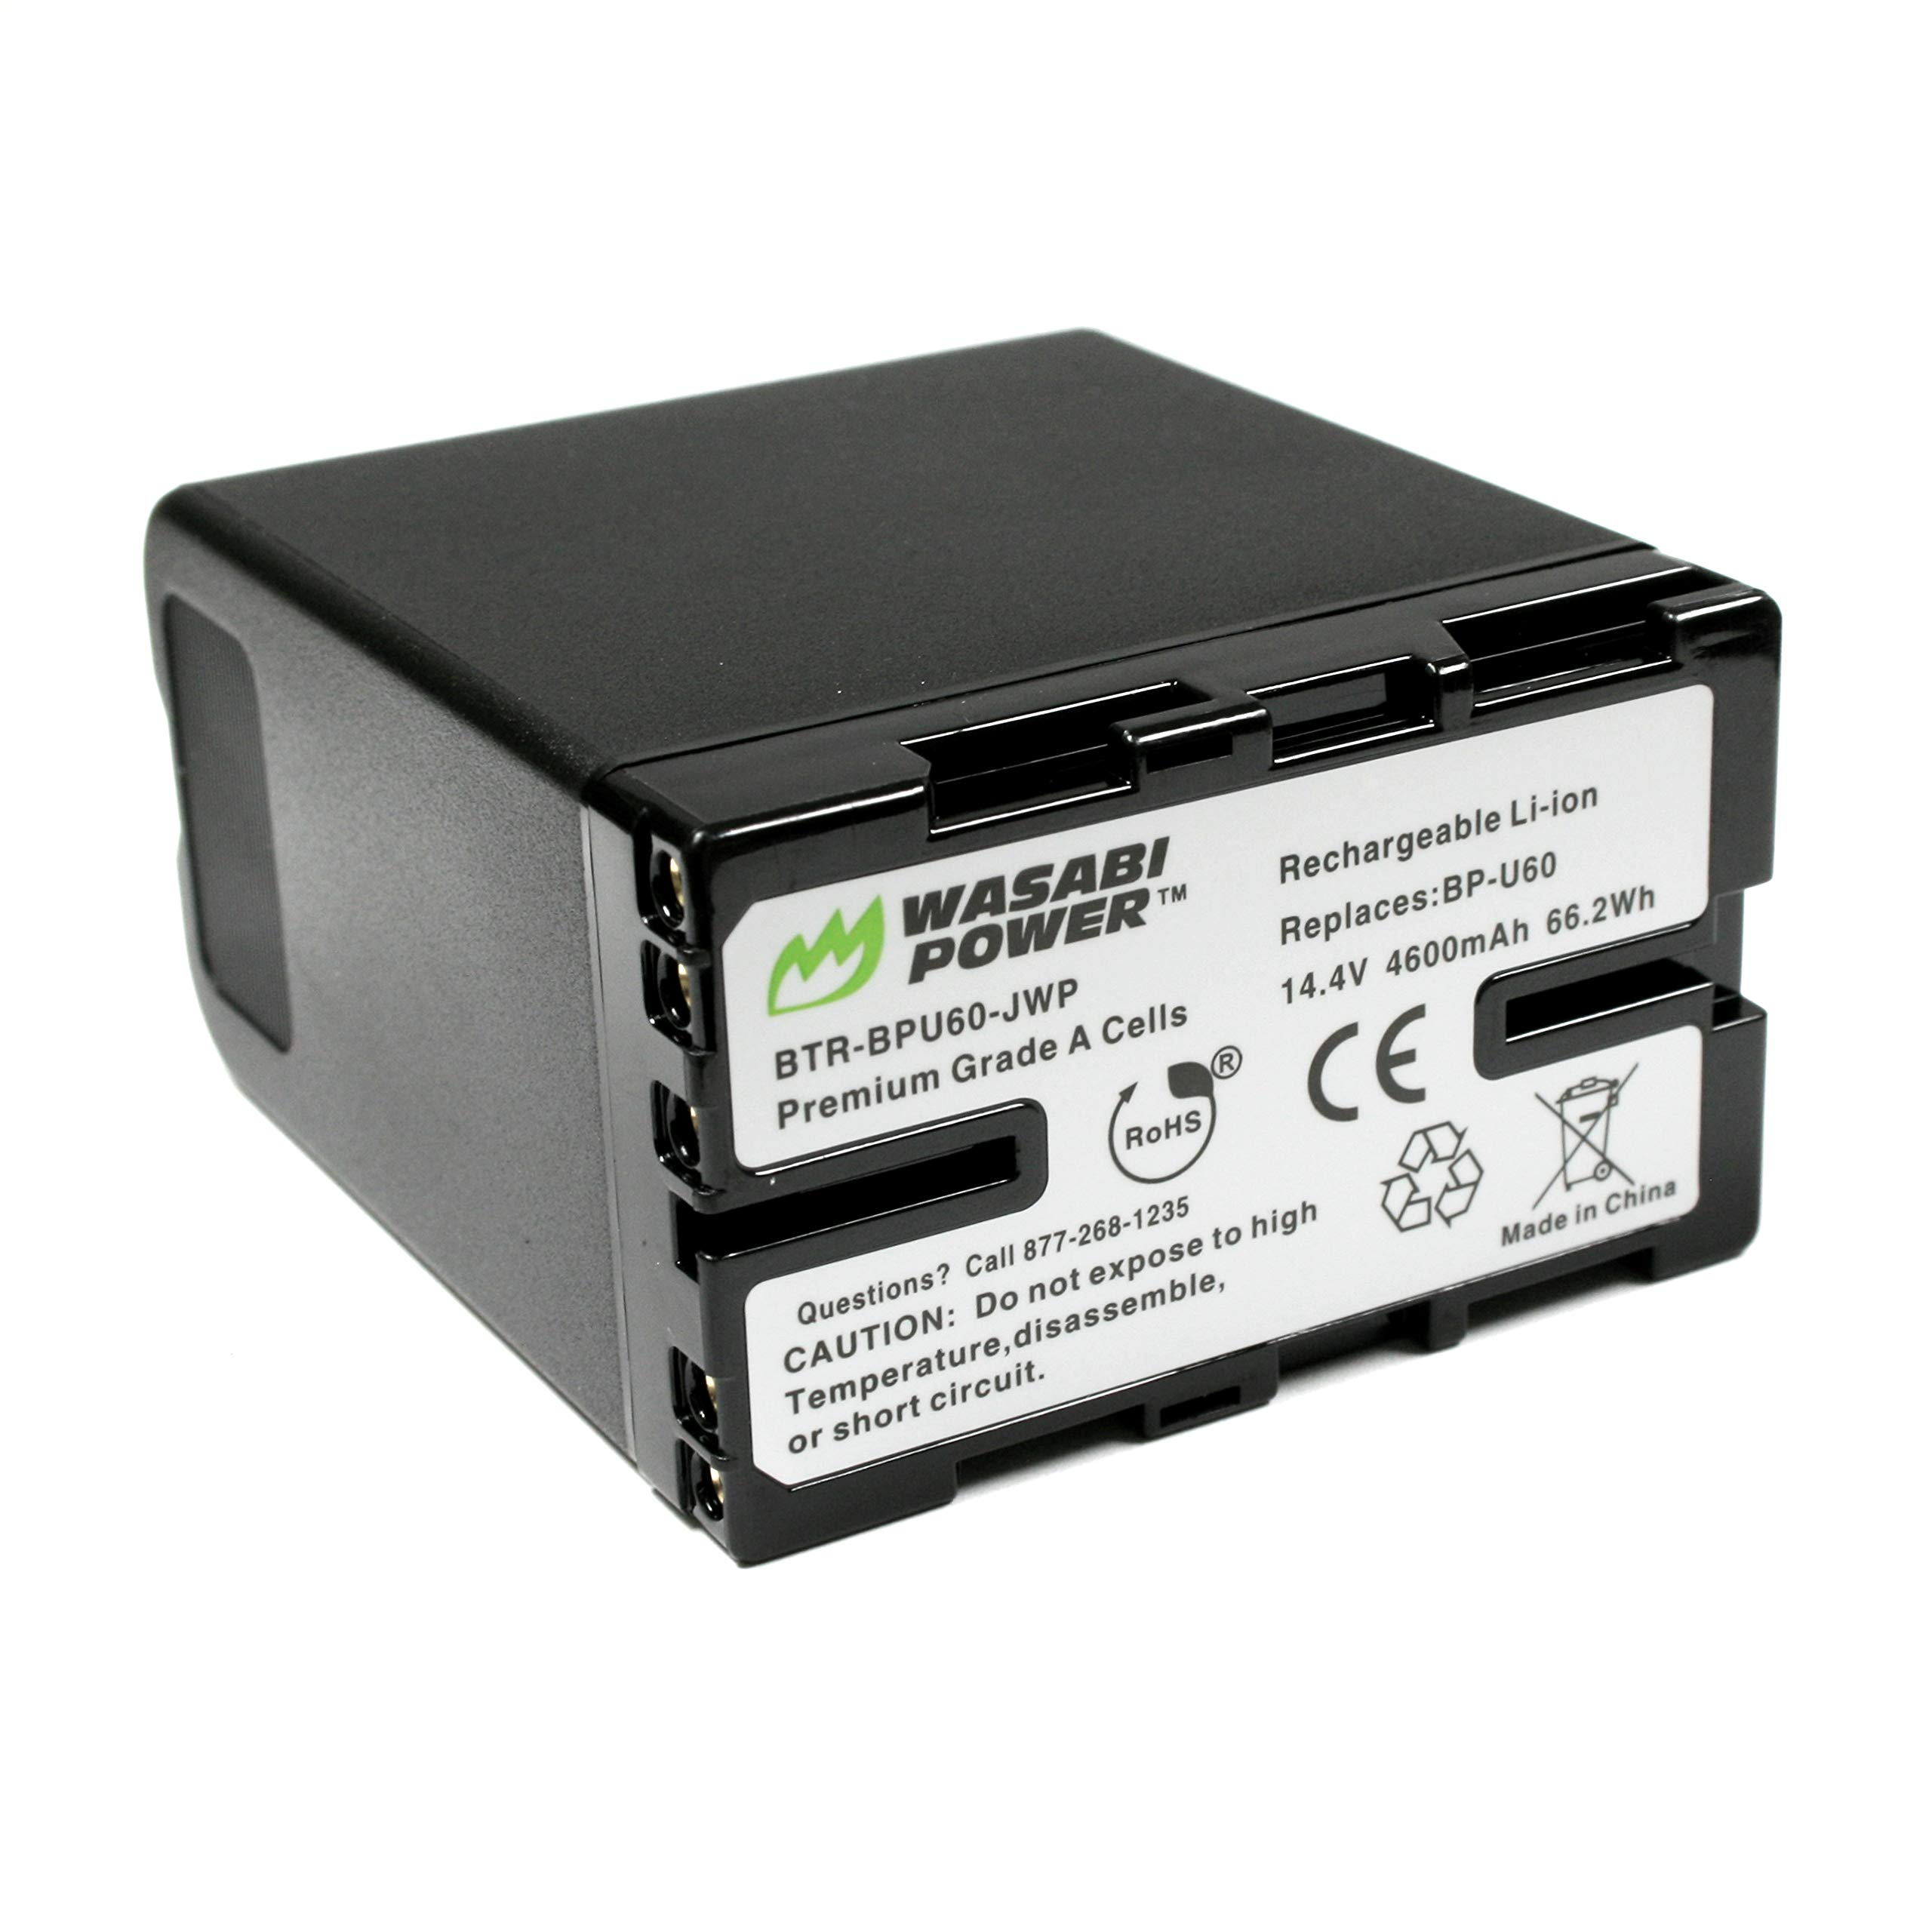 Wasabi Power Battery for Sony BP-U60 and Sony PMW-100, PMW-150, PMW-160, PMW-200, PMW-300, PMW-EX1, PMW-EX1R, PMW-EX3, PMW-EX160, PMW-EX260, PMW-EX280, PMW-F3, PXW-FS5, PXW-FS7 by Wasabi Power